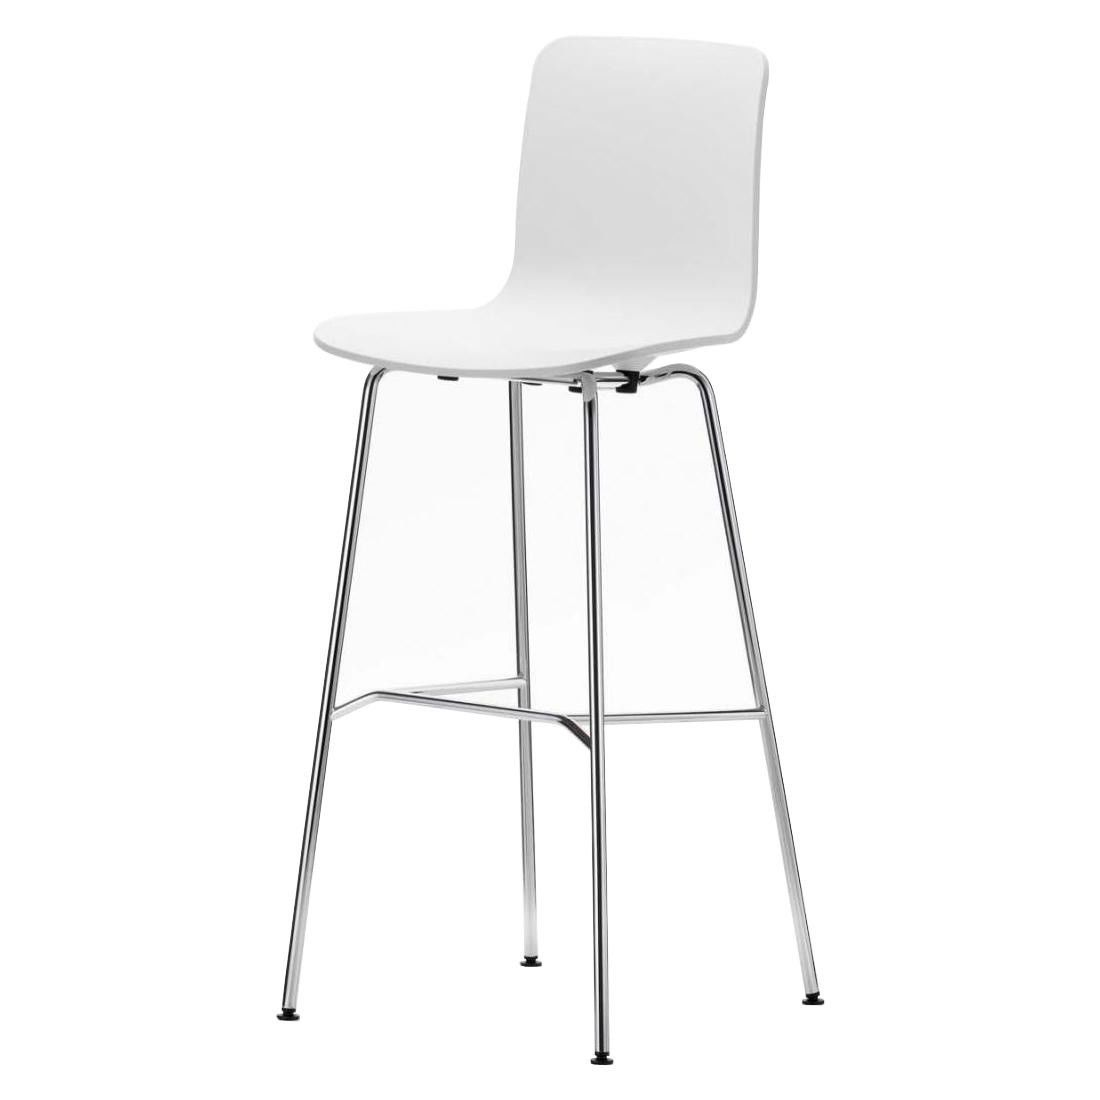 Hal Stool High Bar Stool Vitra AmbienteDirectcom : none1100x1100 ID1071221 d2fee7f8c6e655ff27f7ad274d7b2a63 from www.ambientedirect.com size 1100 x 1100 jpeg 32kB